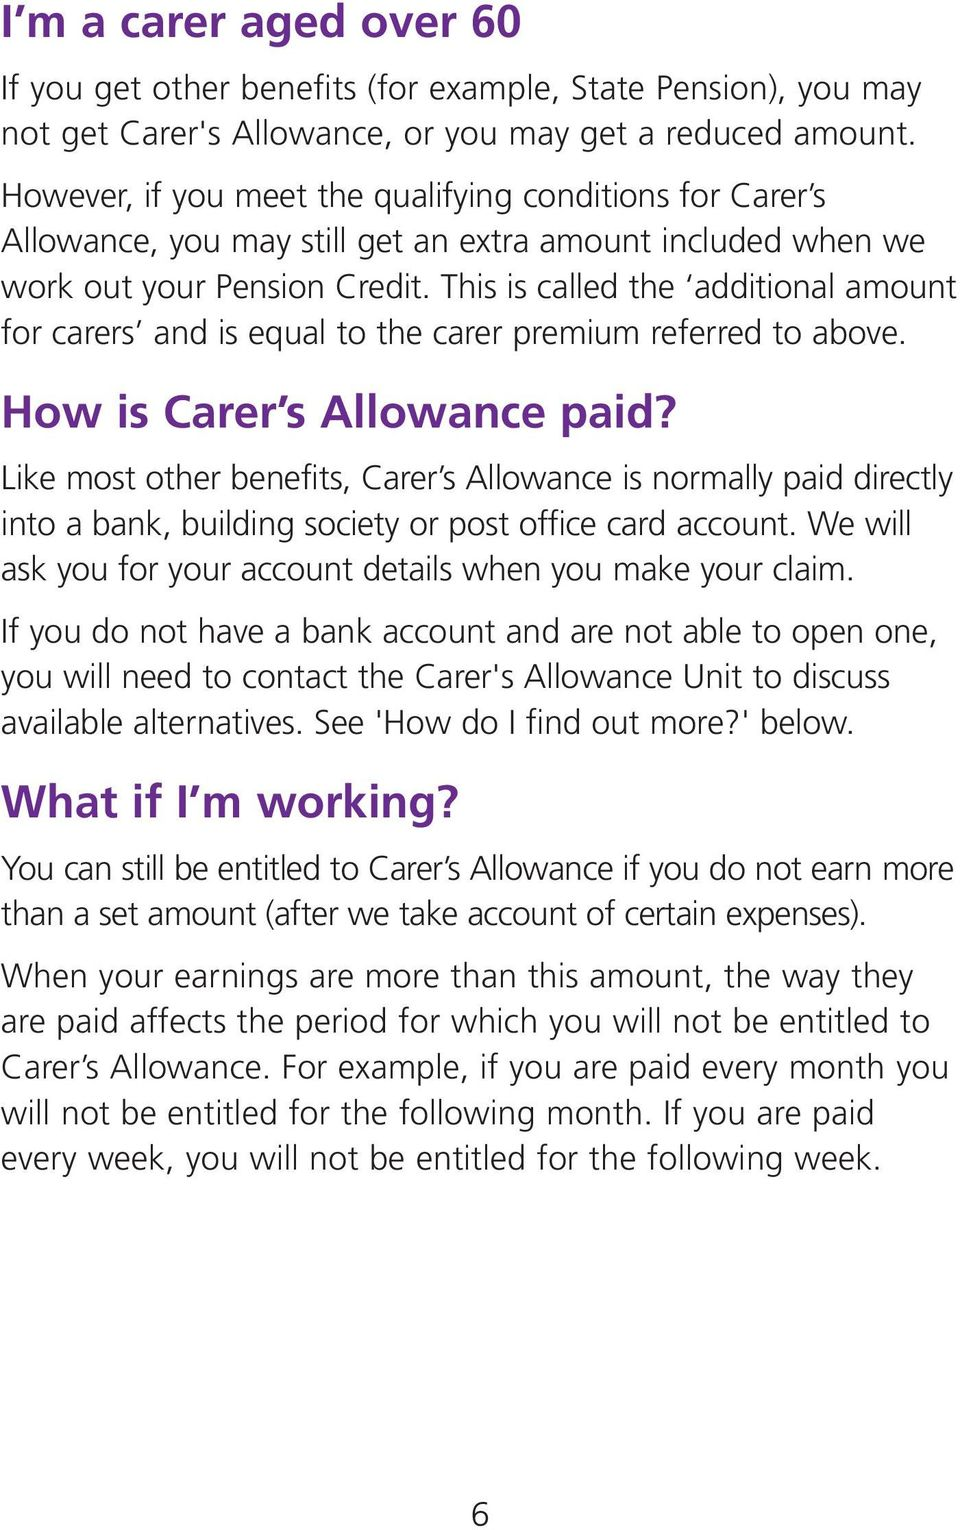 This is called the additional amount for carers and is equal to the carer premium referred to above. How is Carer s Allowance paid?